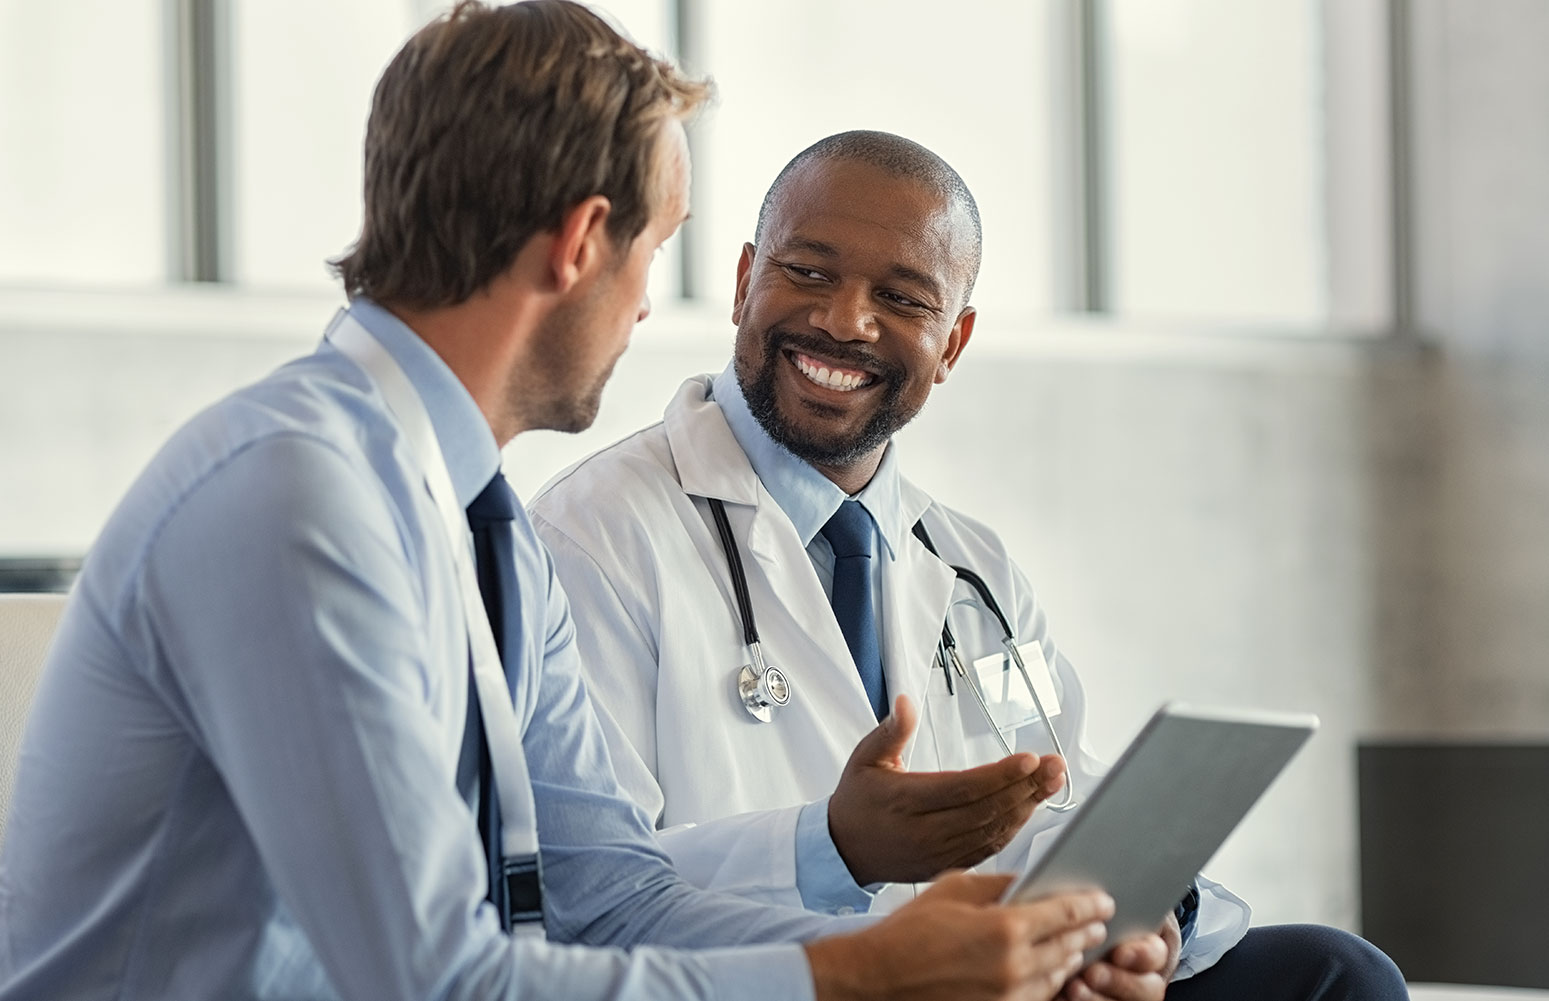 African American male doctor speaking to caucasian man in blue shirt